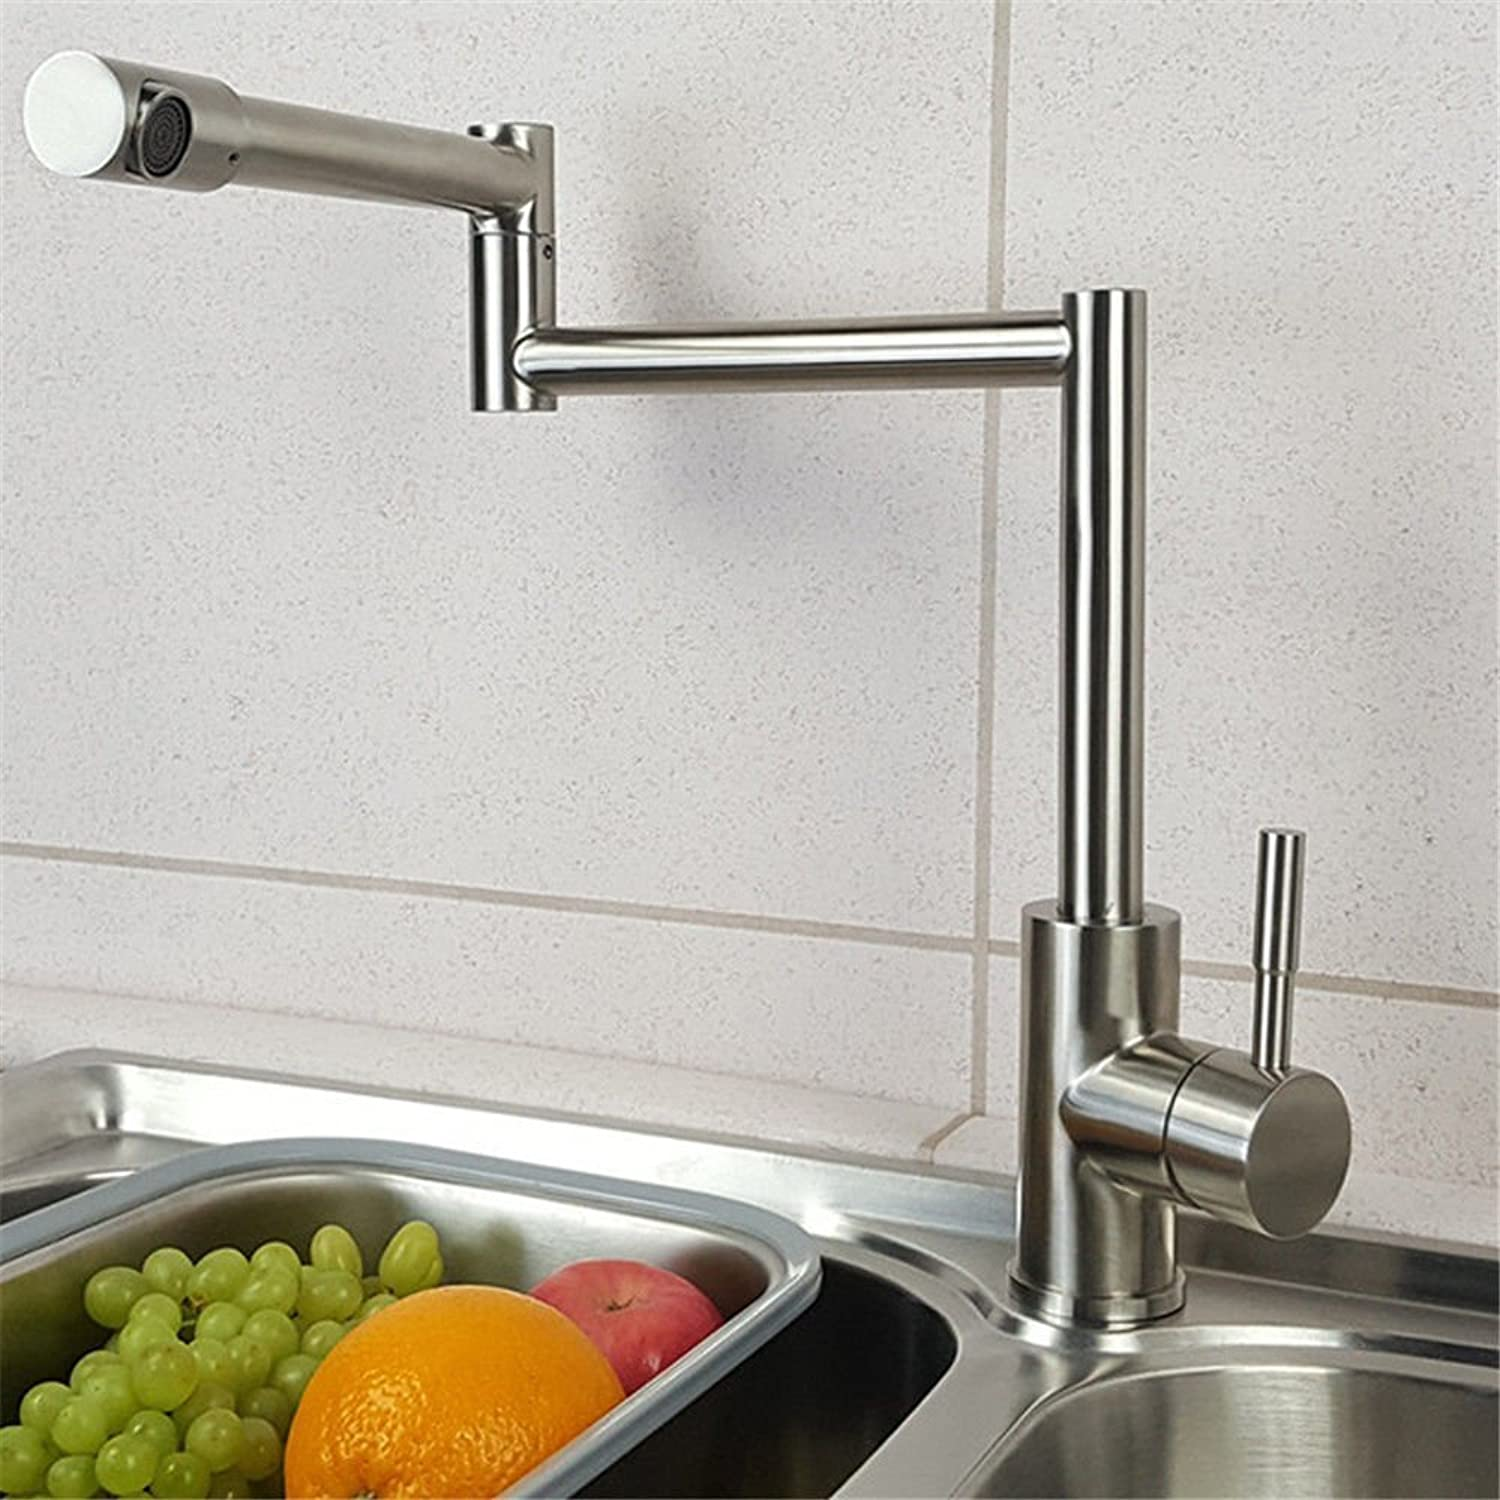 Gyps Faucet Basin Mixer Tap Waterfall Faucet Antique Bathroom Mixer Bar Mixer Shower Set Tap antique bathroom faucet The modern folding 304 stainless steel 360 degree redation and cold water Sinks Fau